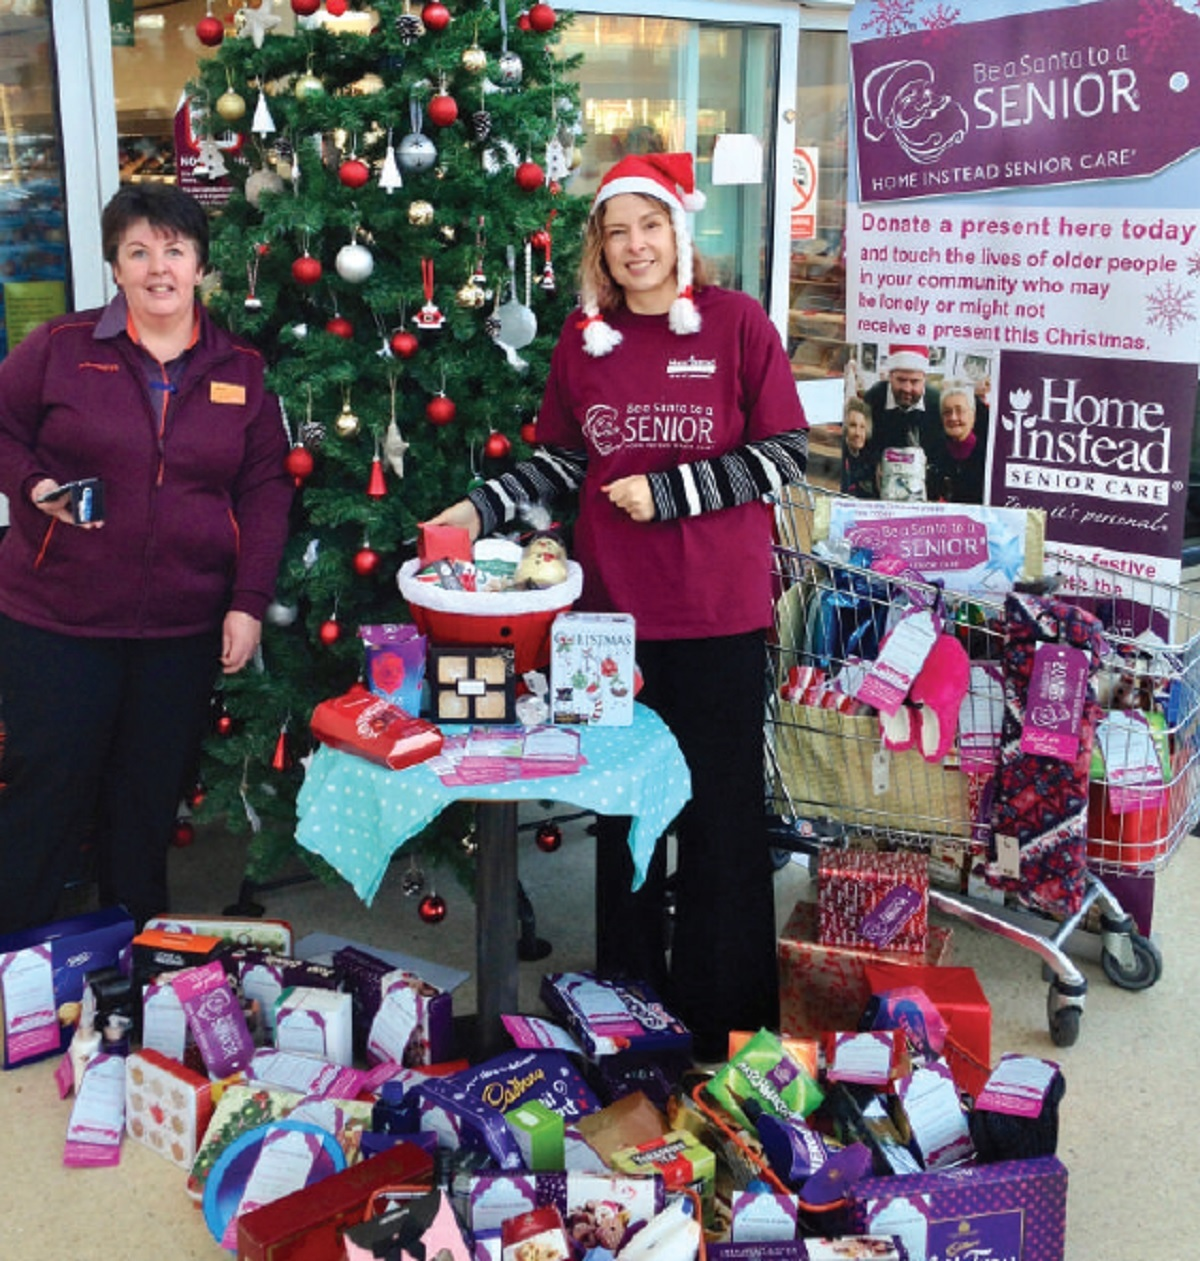 Messenger readers are being urged to support Home Instead's 'Be a Santa to a Senior' Christmas present appeal by (l to r) Jackie Mcmahon (Sainsbury's Sale's community liaison manager) and Liz Rhodes (Home Instead Senior Care (Altrincham & Sale